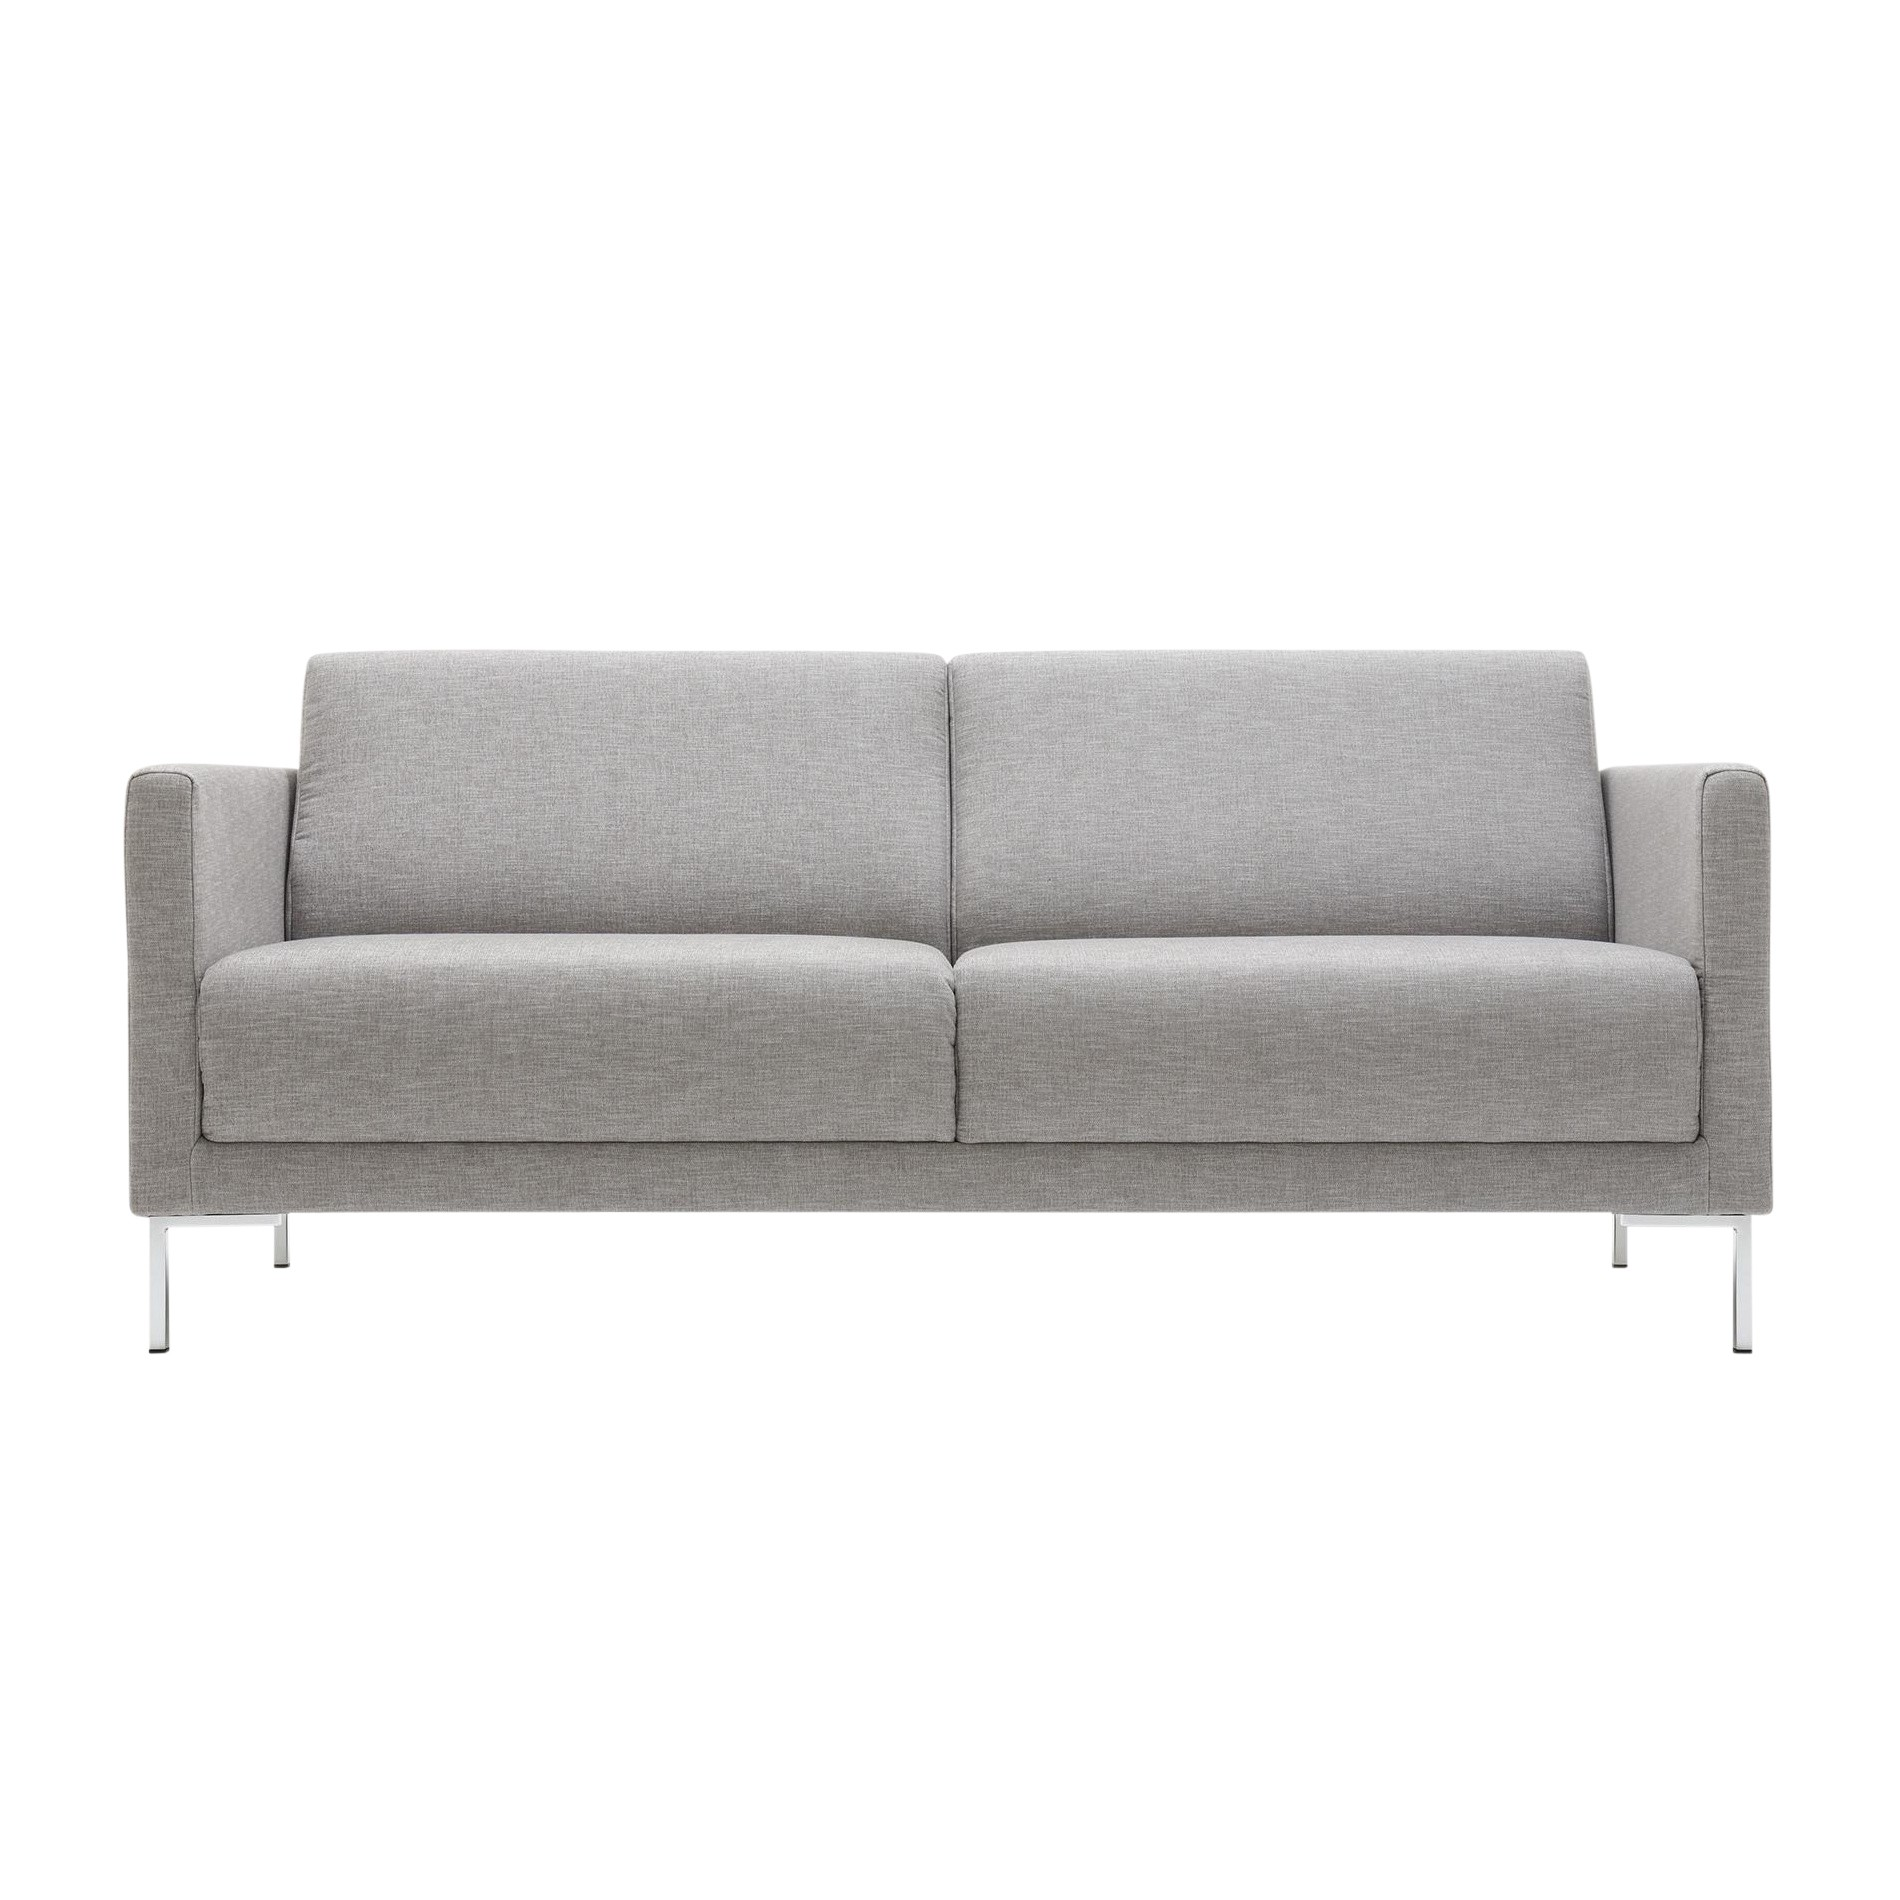 Freistil Sofa Freistil Rolf Benz Freistil 141 Sofa 2 Seater 228x81x88cm | Ambientedirect